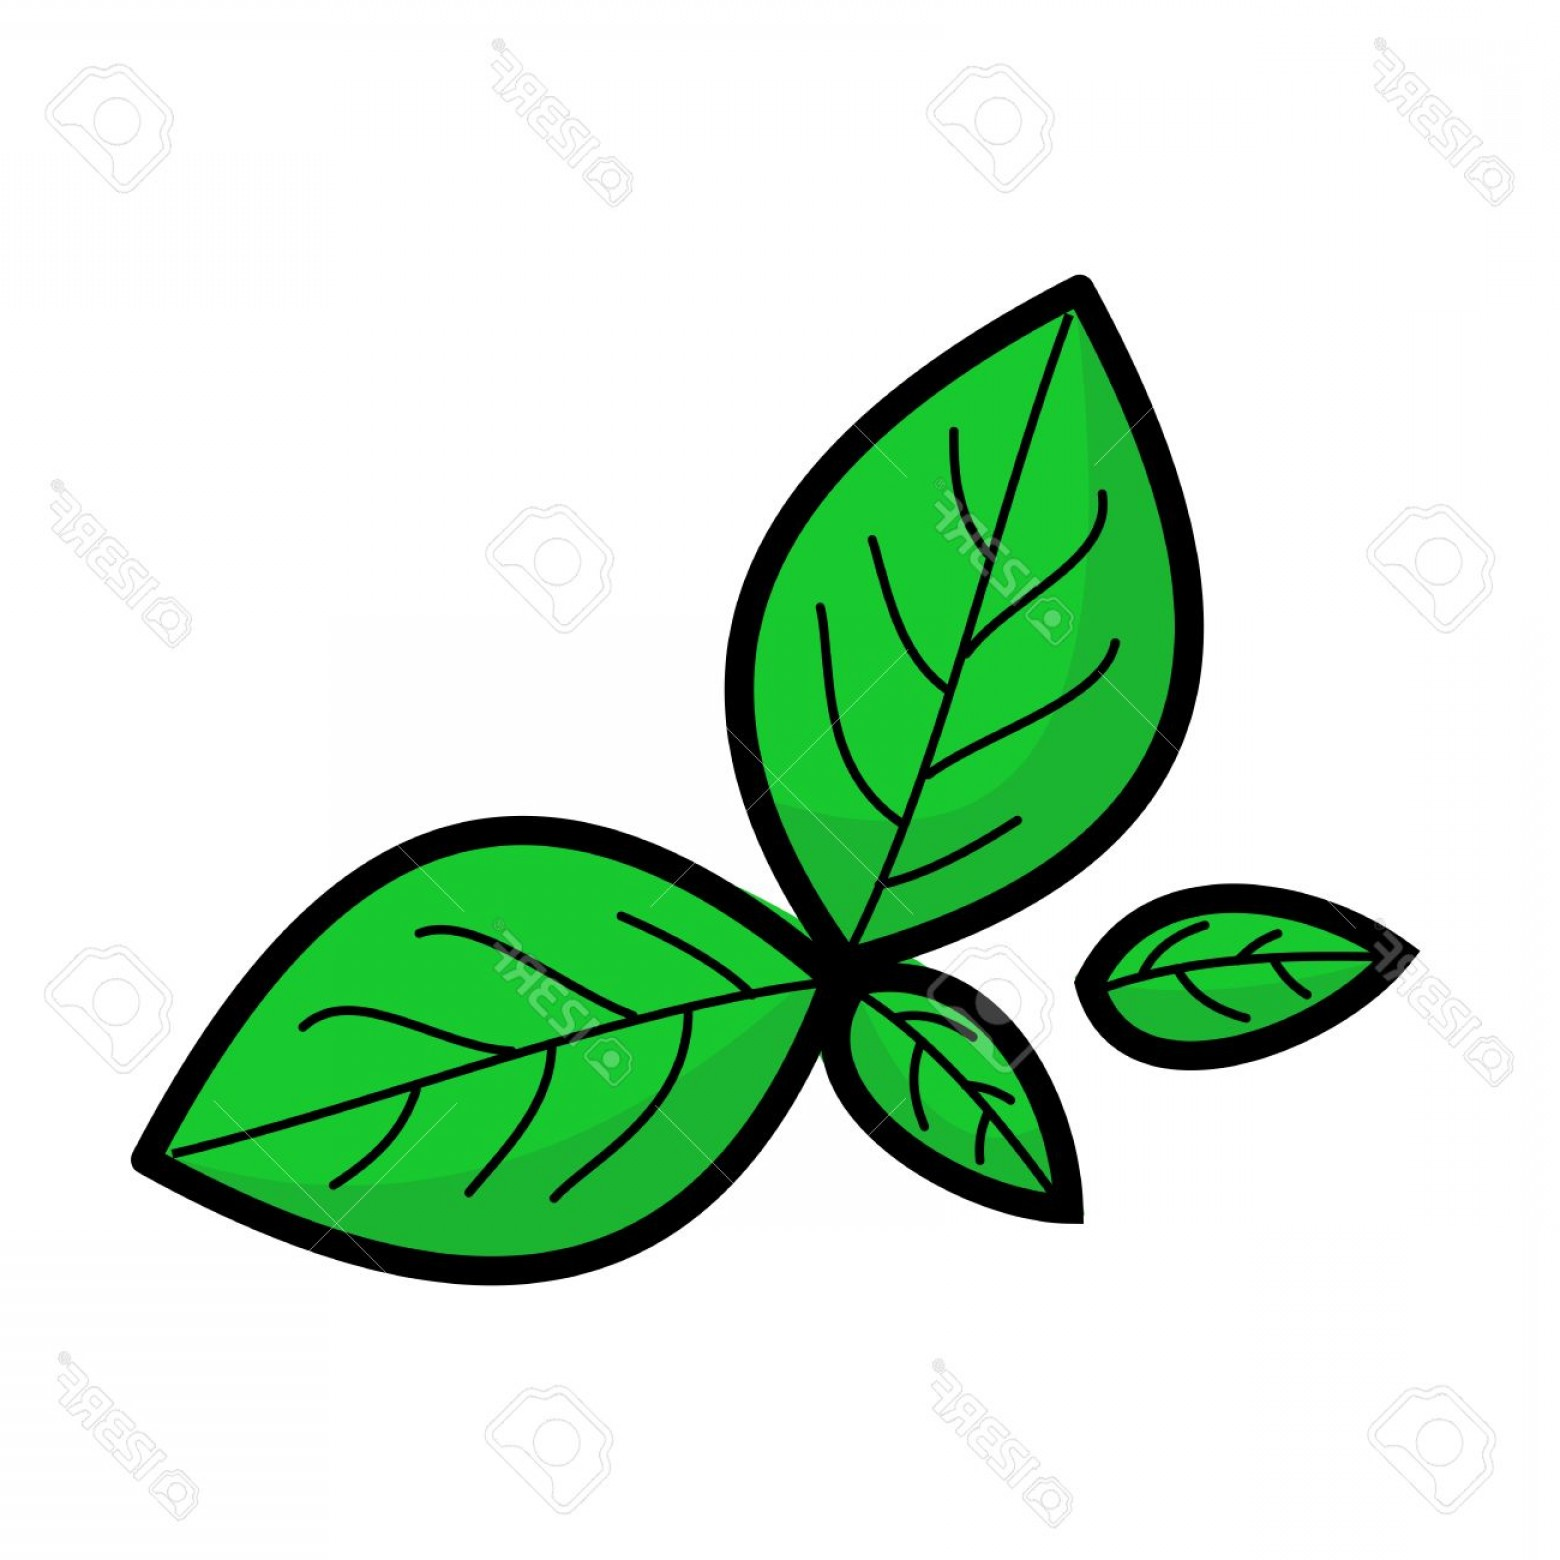 Basil Vector: Photostock Vector Fresh Green Leaves Of Basil And Spinach